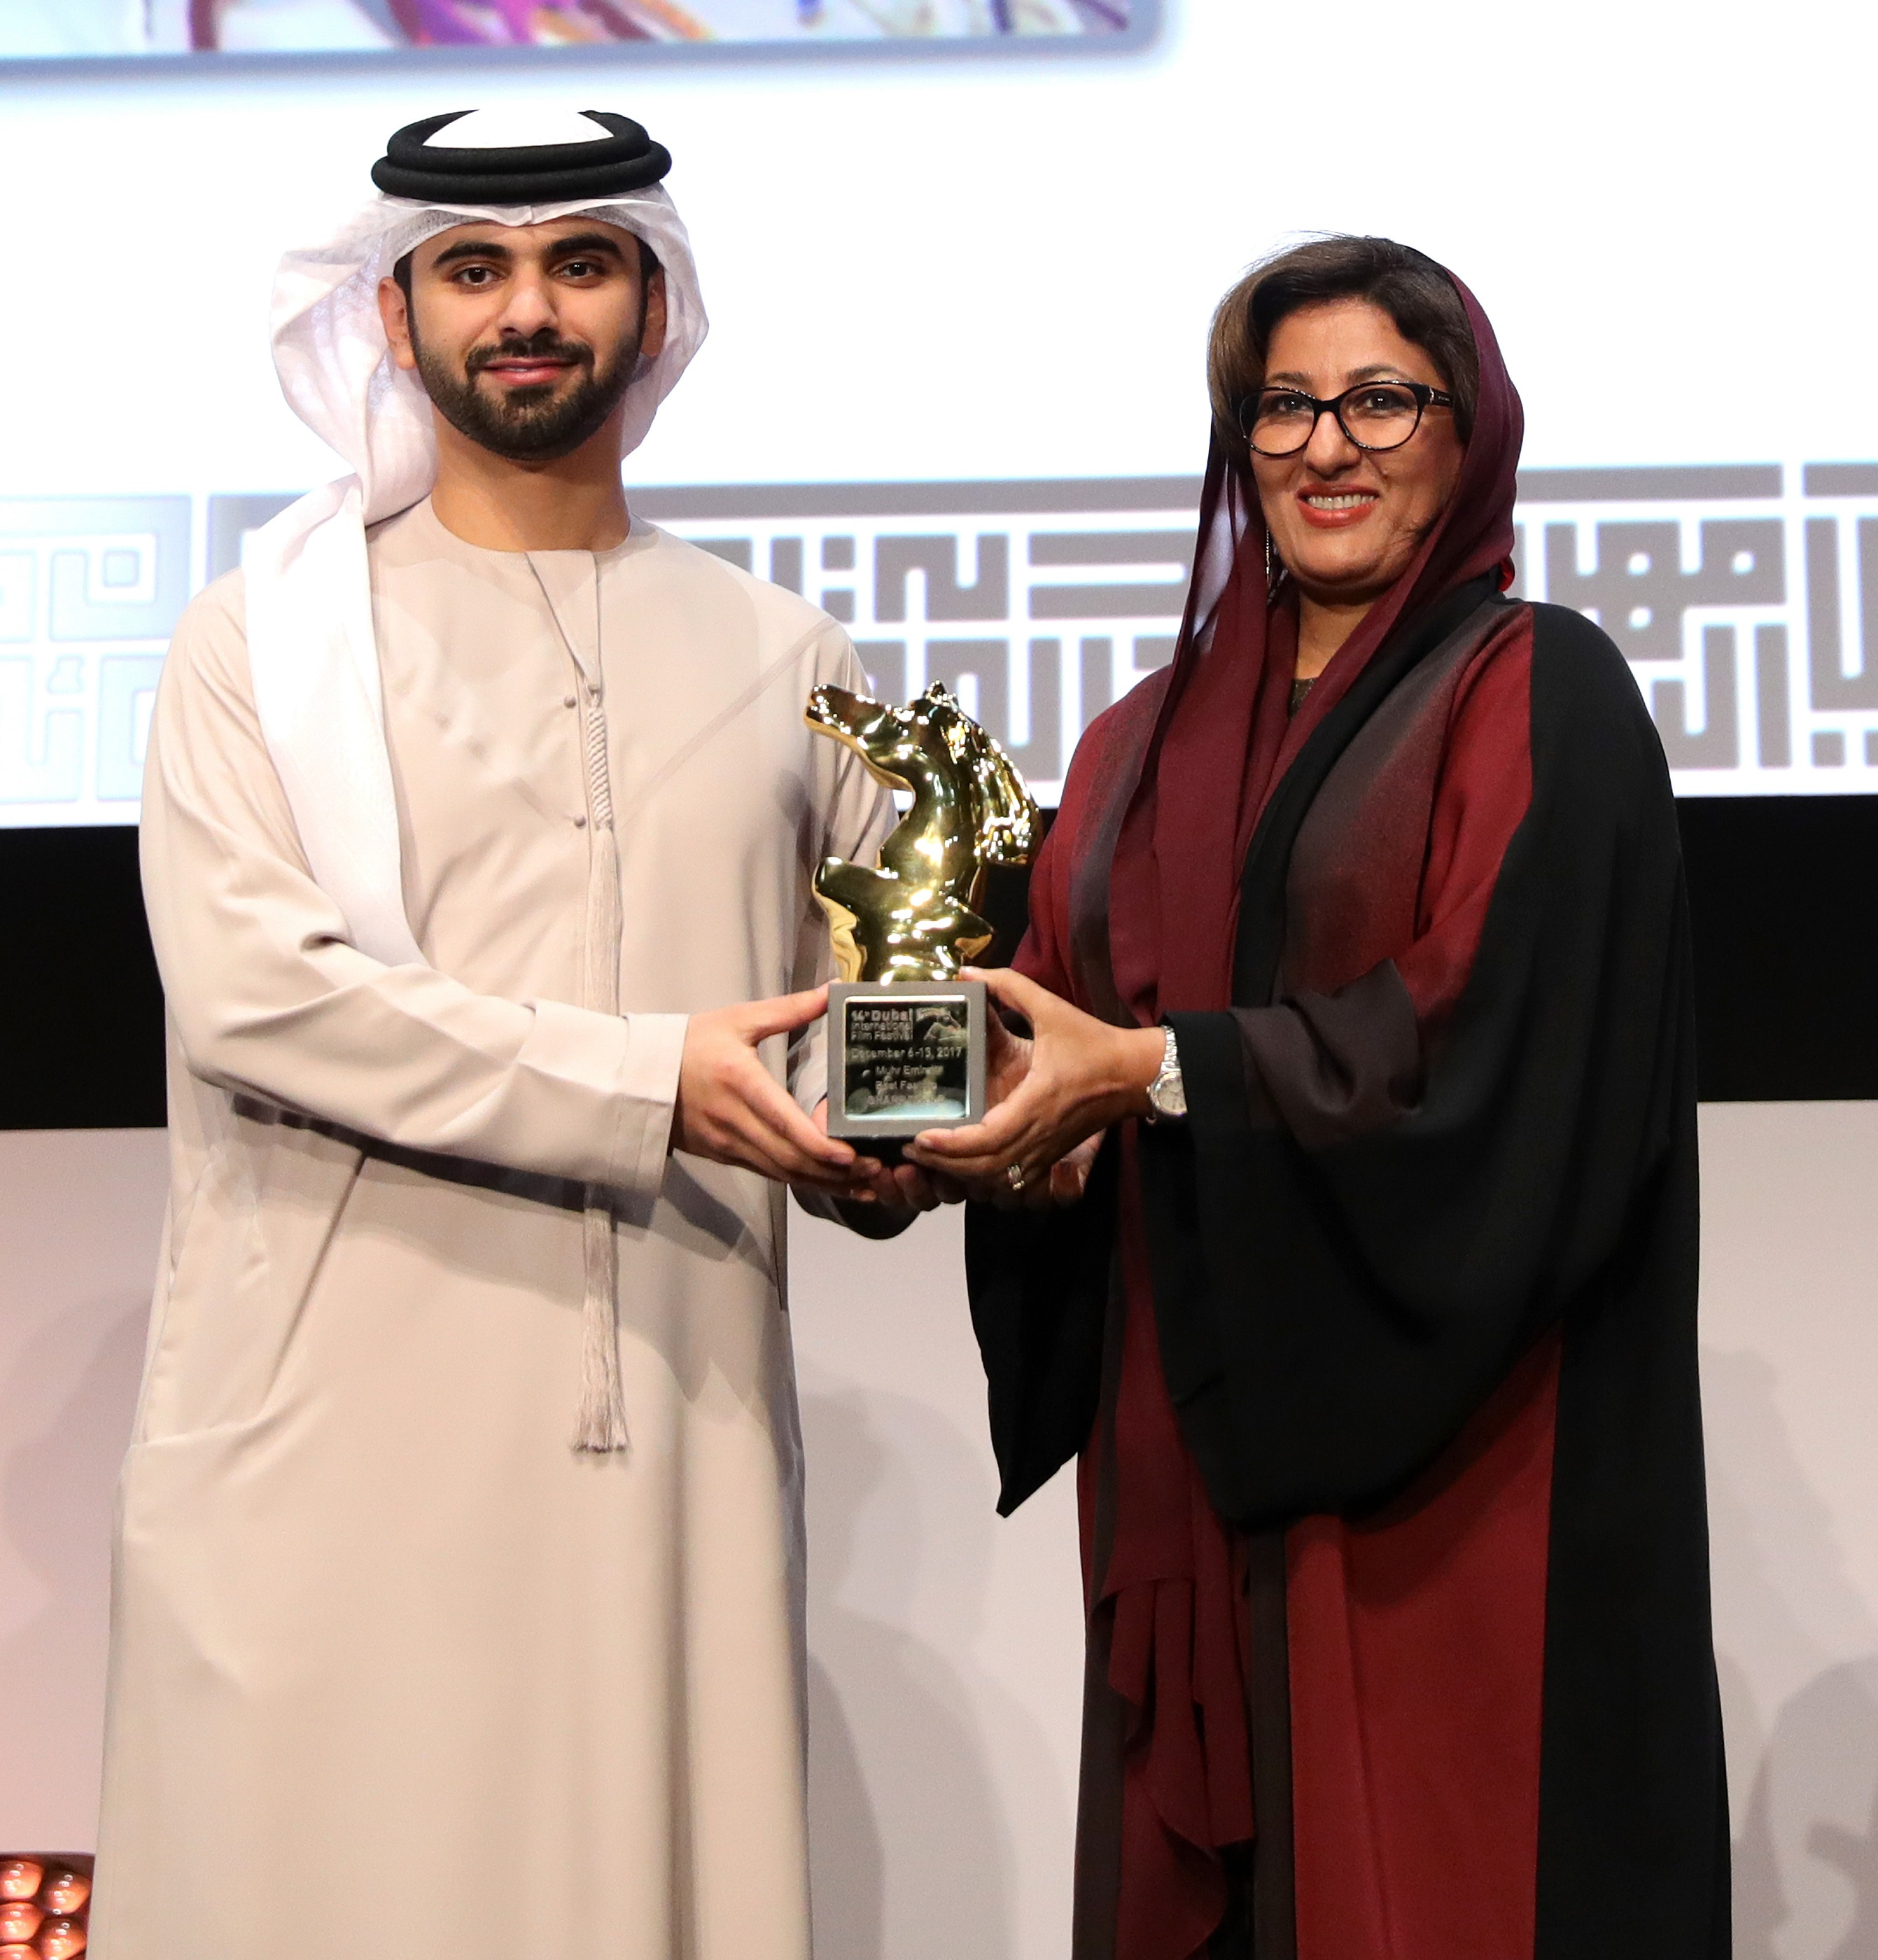 His Highness Sheikh Mansoor bin Mohammed bin Rashid Al Maktoum presenting the award of the Best Emirati Feature Film to director Nujoom Alghanem for her film 'Sharp Tools'.